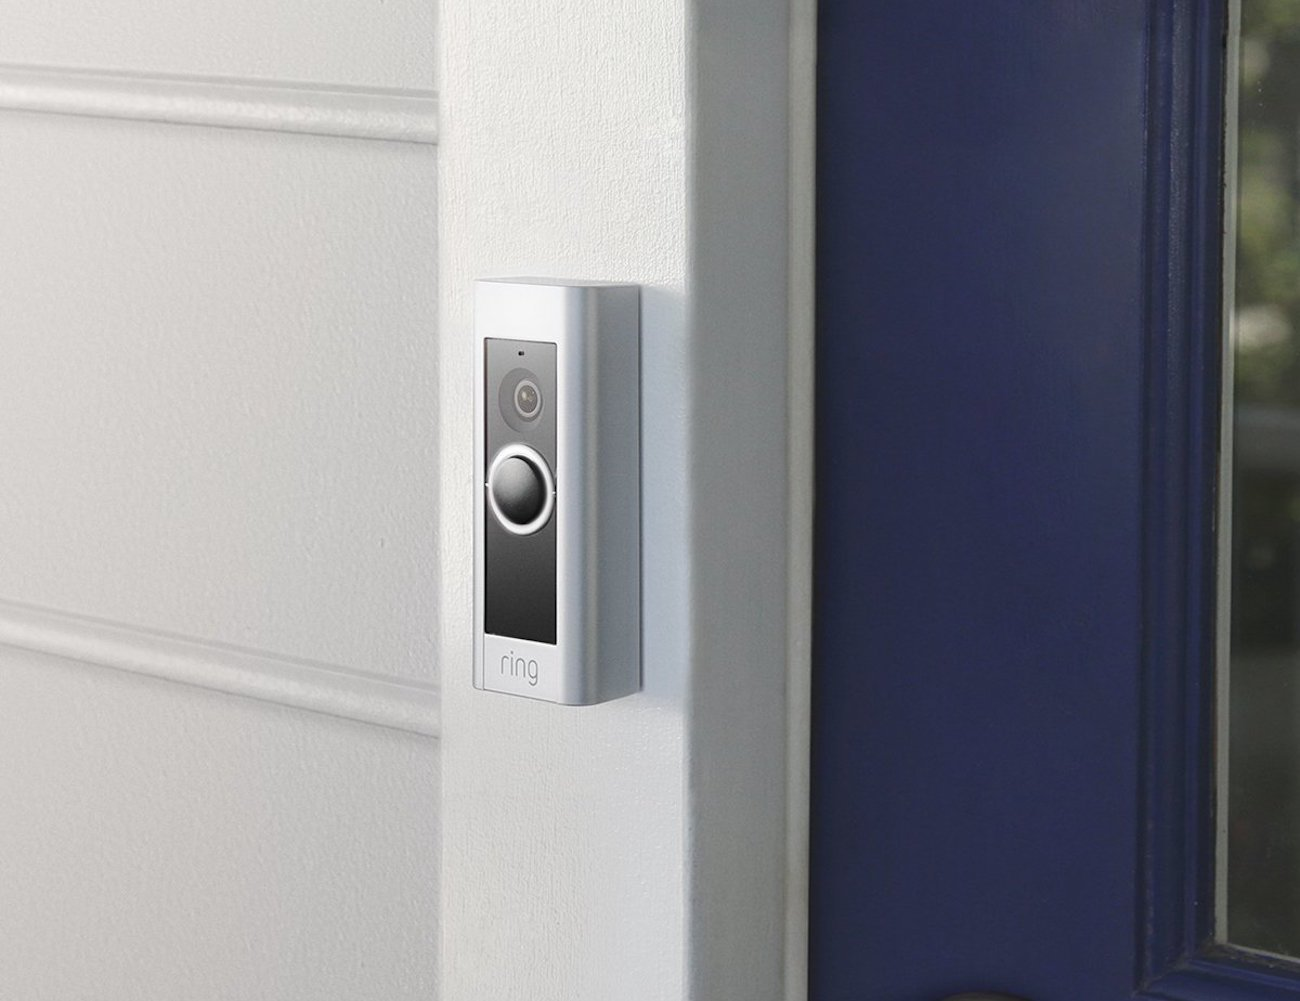 Ring+Video+Doorbell+Pro